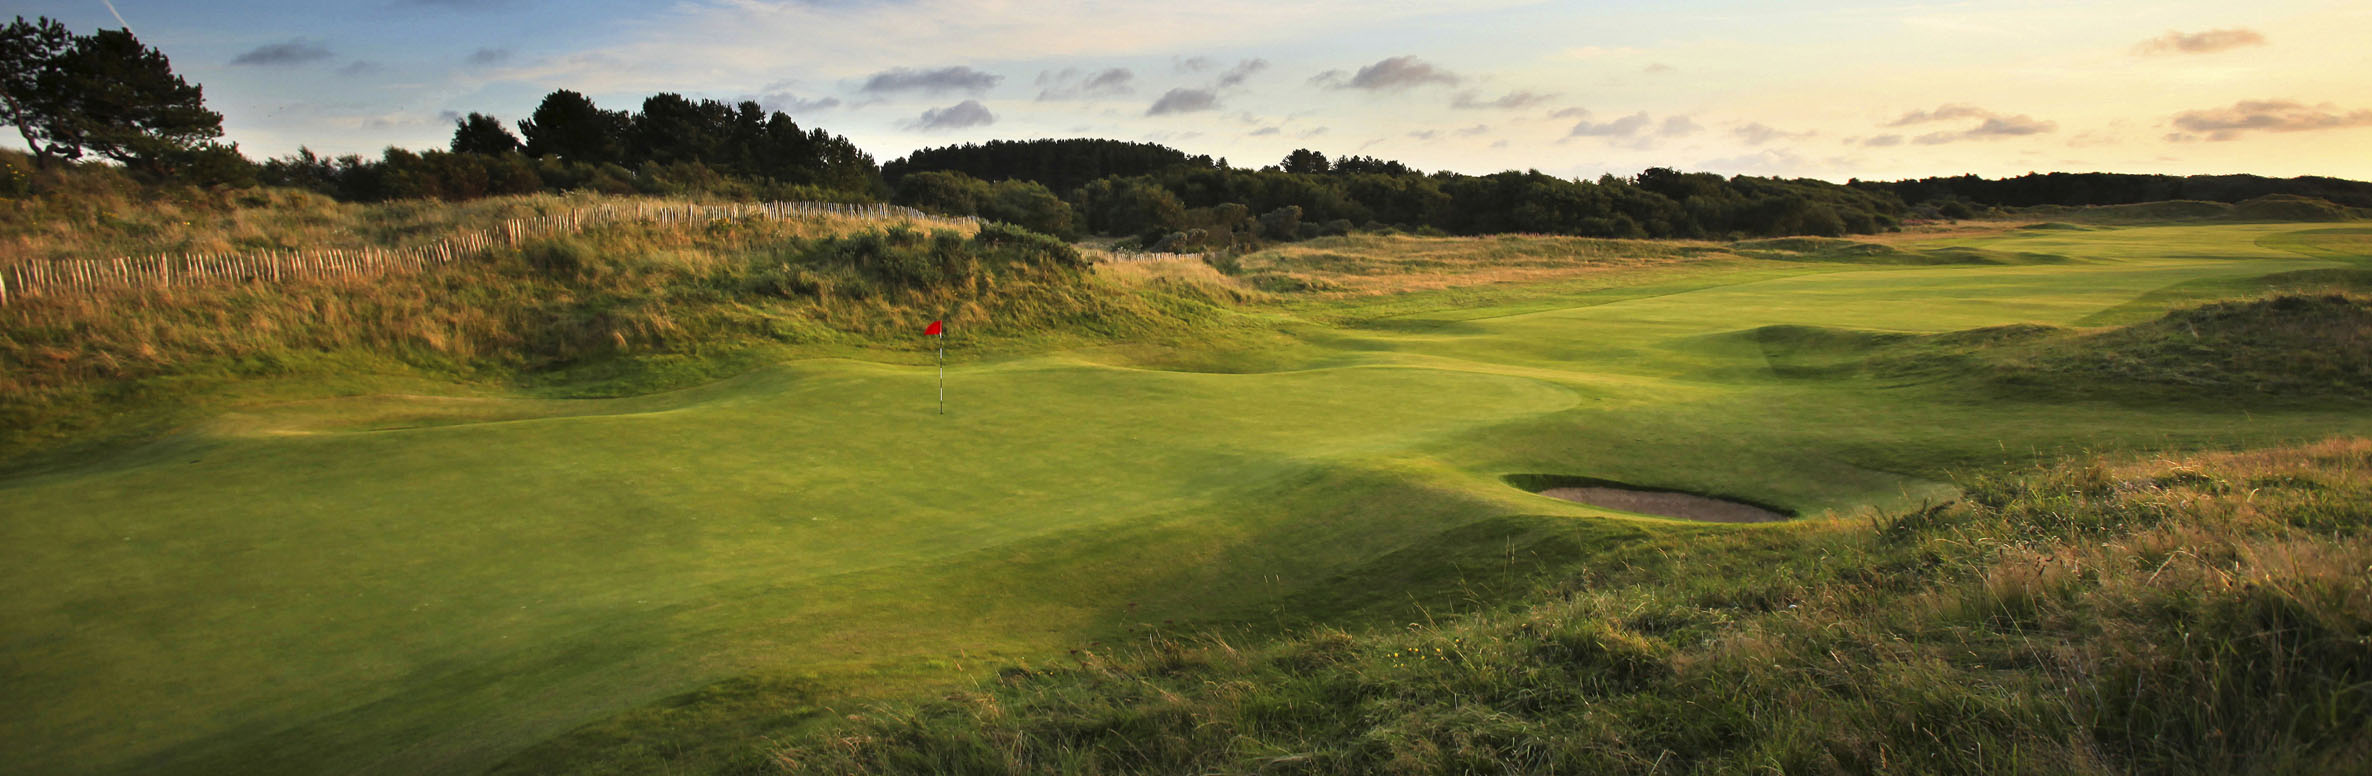 Golf Course Image - Royal Birkdale Golf Club No. 17